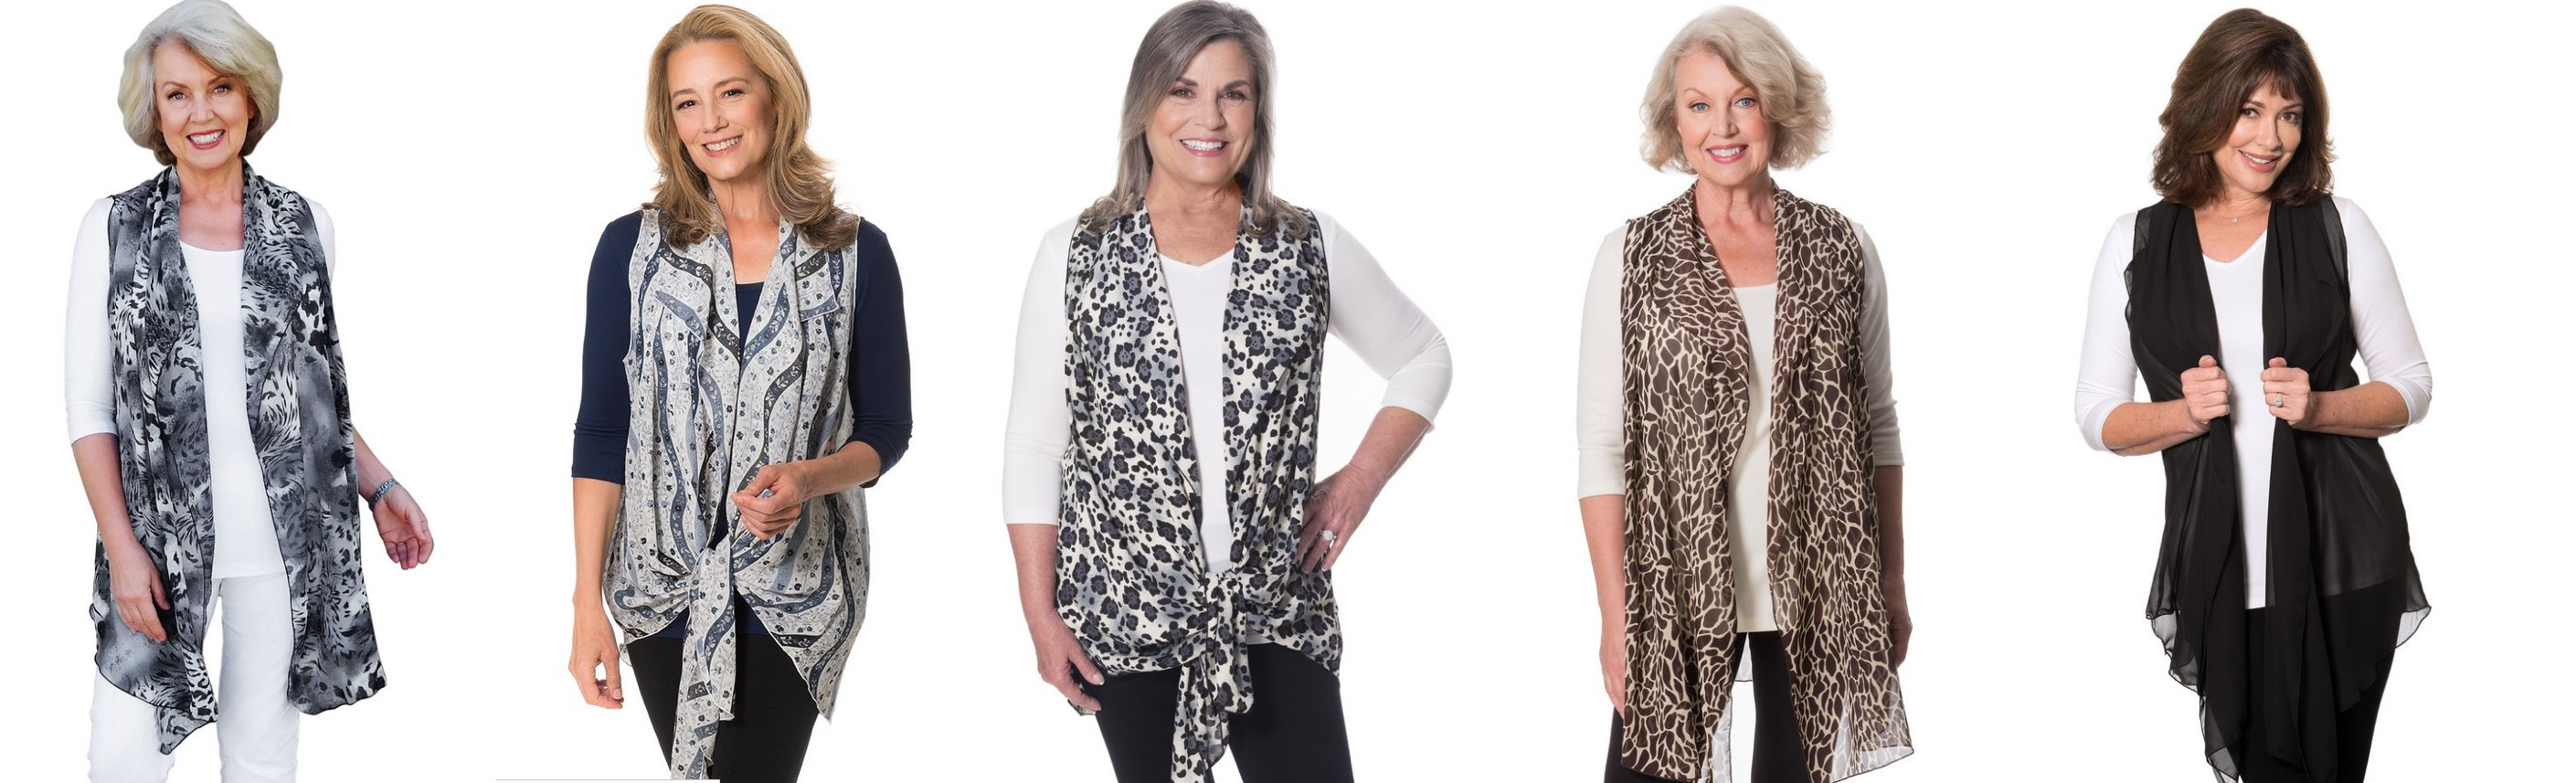 Clever cascading vests from Covered Perfectly cover midriff and tummy problems #hide tummy fat #Covered Perfectly  https://www.style-yourself-confident.com/hide-tummy-fat.html